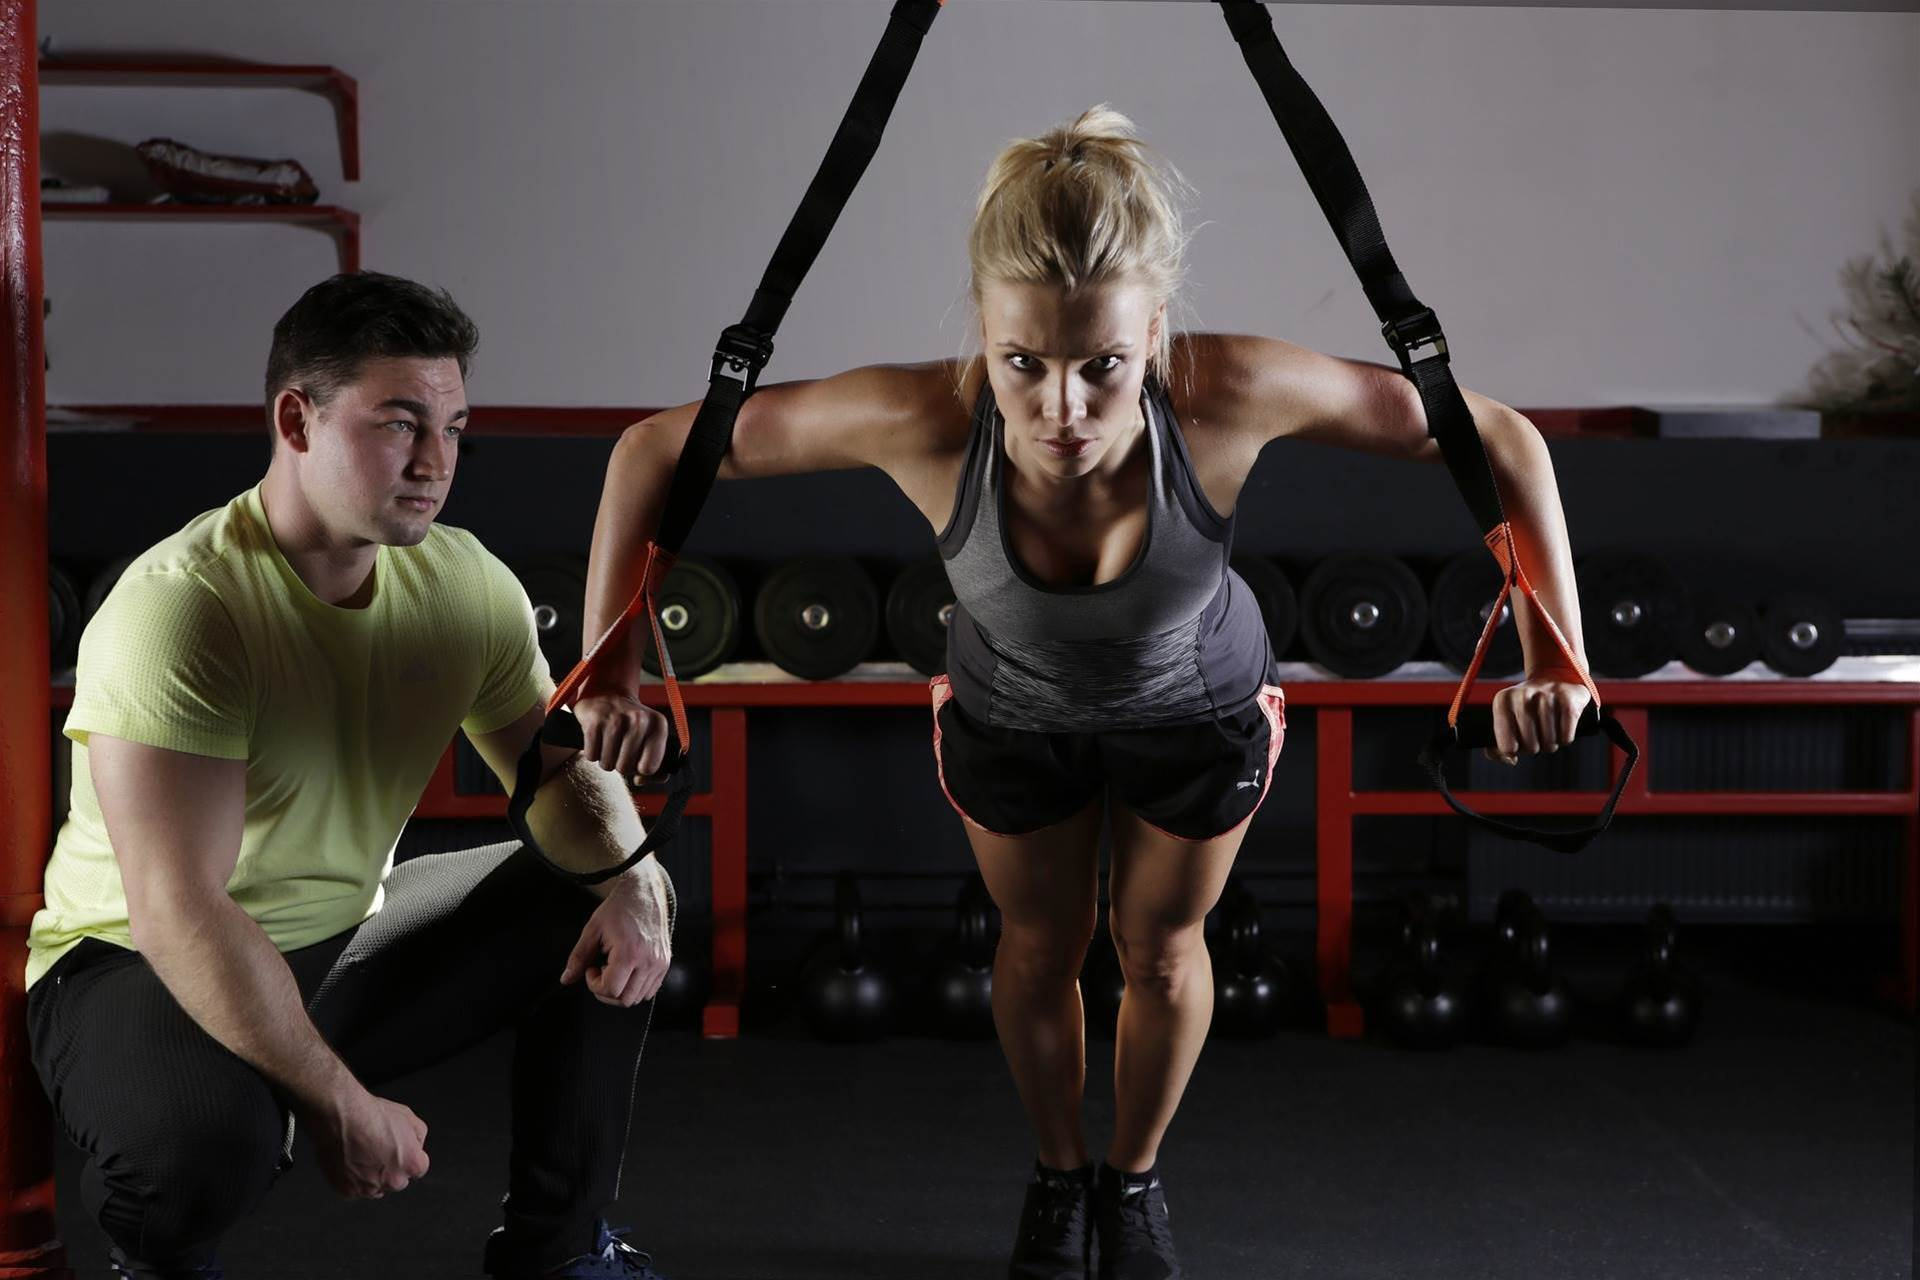 The ideal weight training plan for cyclists